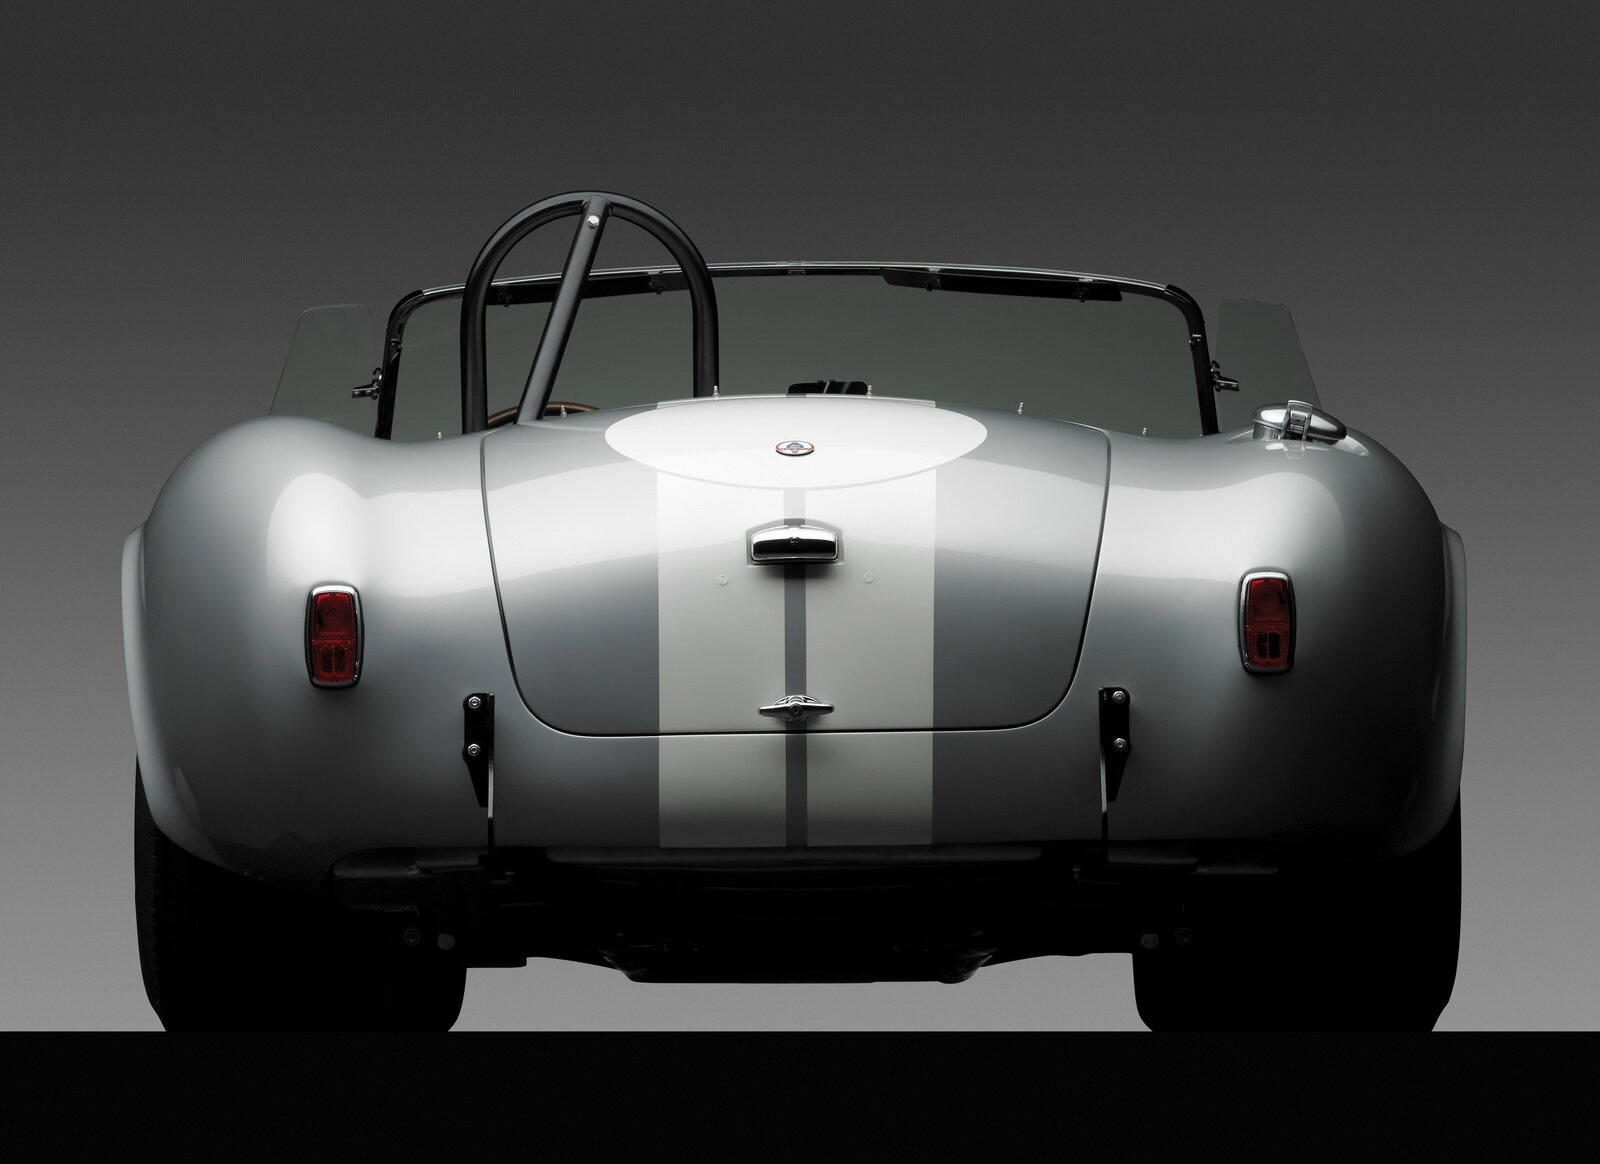 shelby-cobra-427-is-up-for-sale_100638128_h.jpg